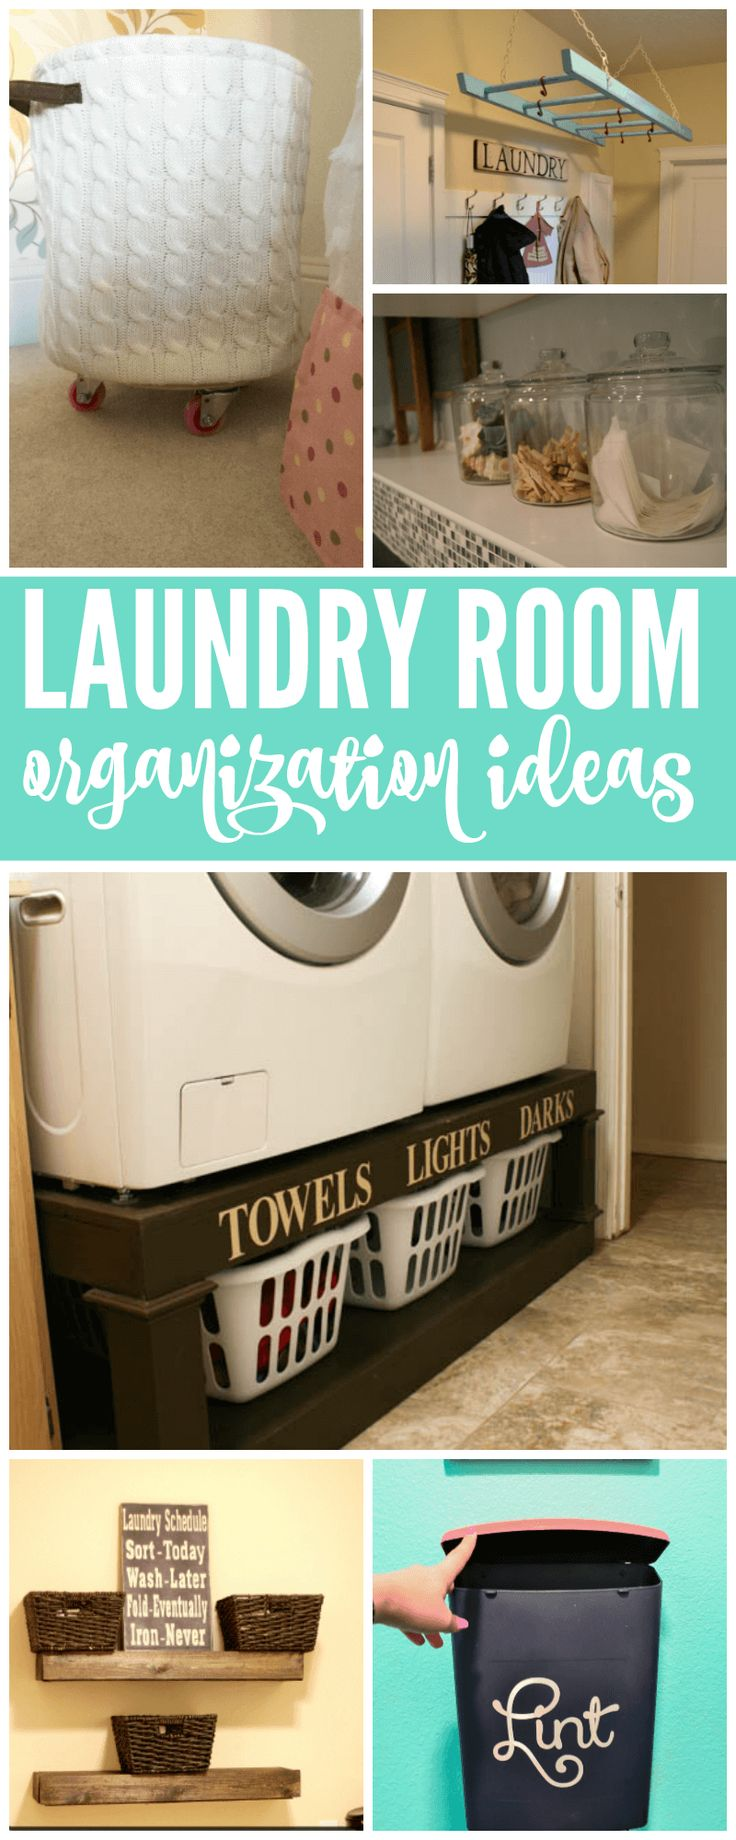 Laundry Room Organization Ideas! The TOP ideas for organizing your laundry room! Let's be honest, this may be where you spend a majority of your time. Get it clean and orderly!